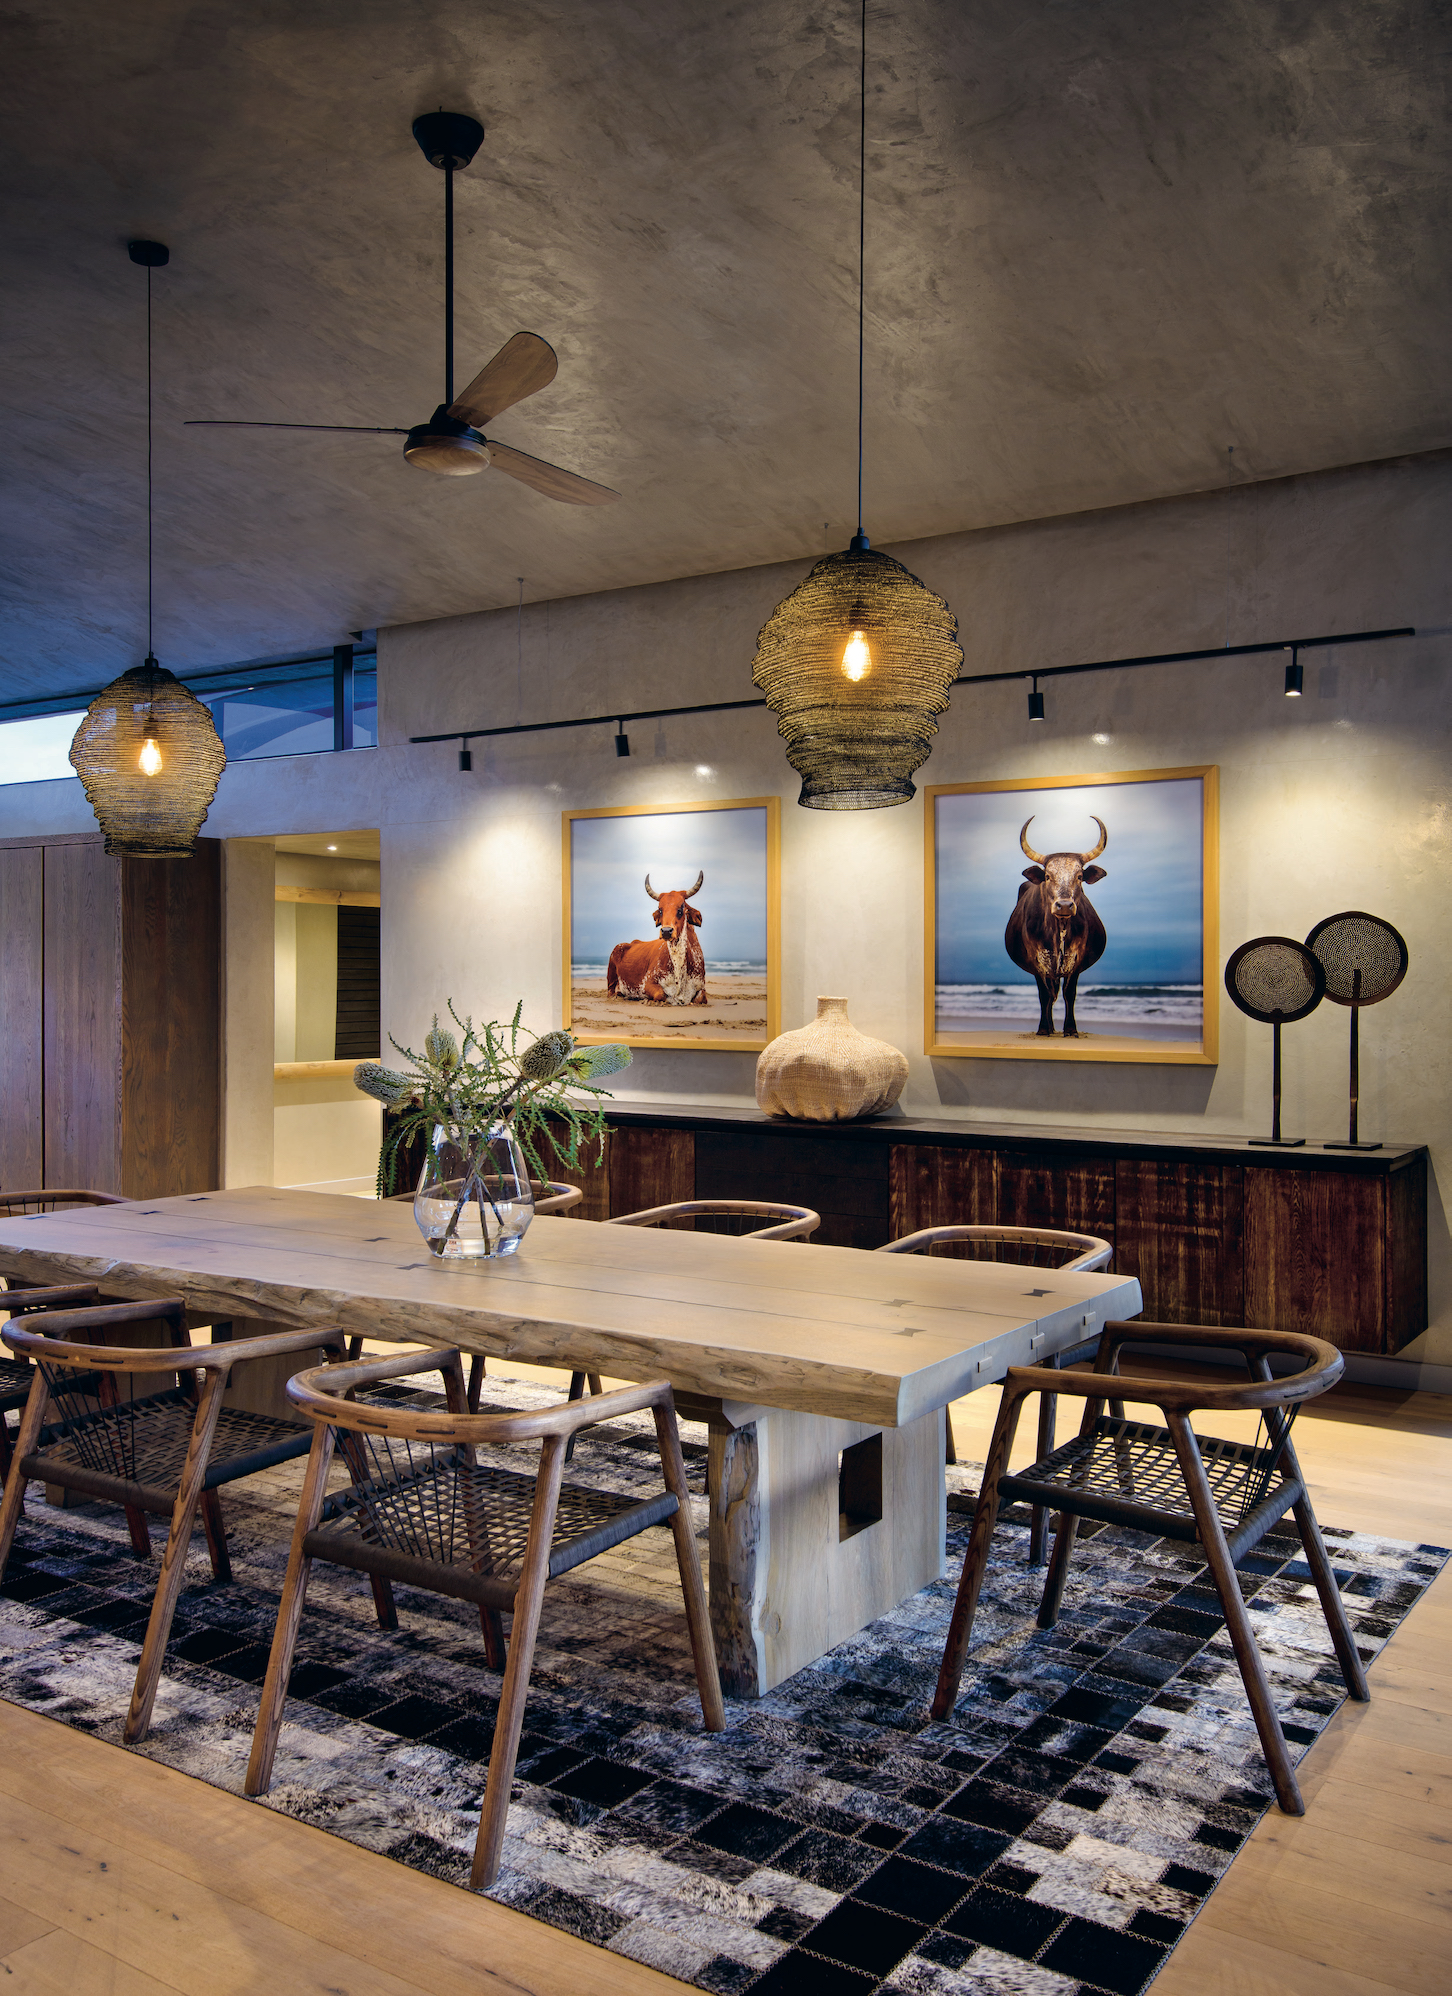 The dining room features a custom-made table. A subtle cattle theme was inspired by papier-mâché finds, and is reflected in the artworks by Daniel Naudé. Patchwork leather carpets are a prominent feature throughout.